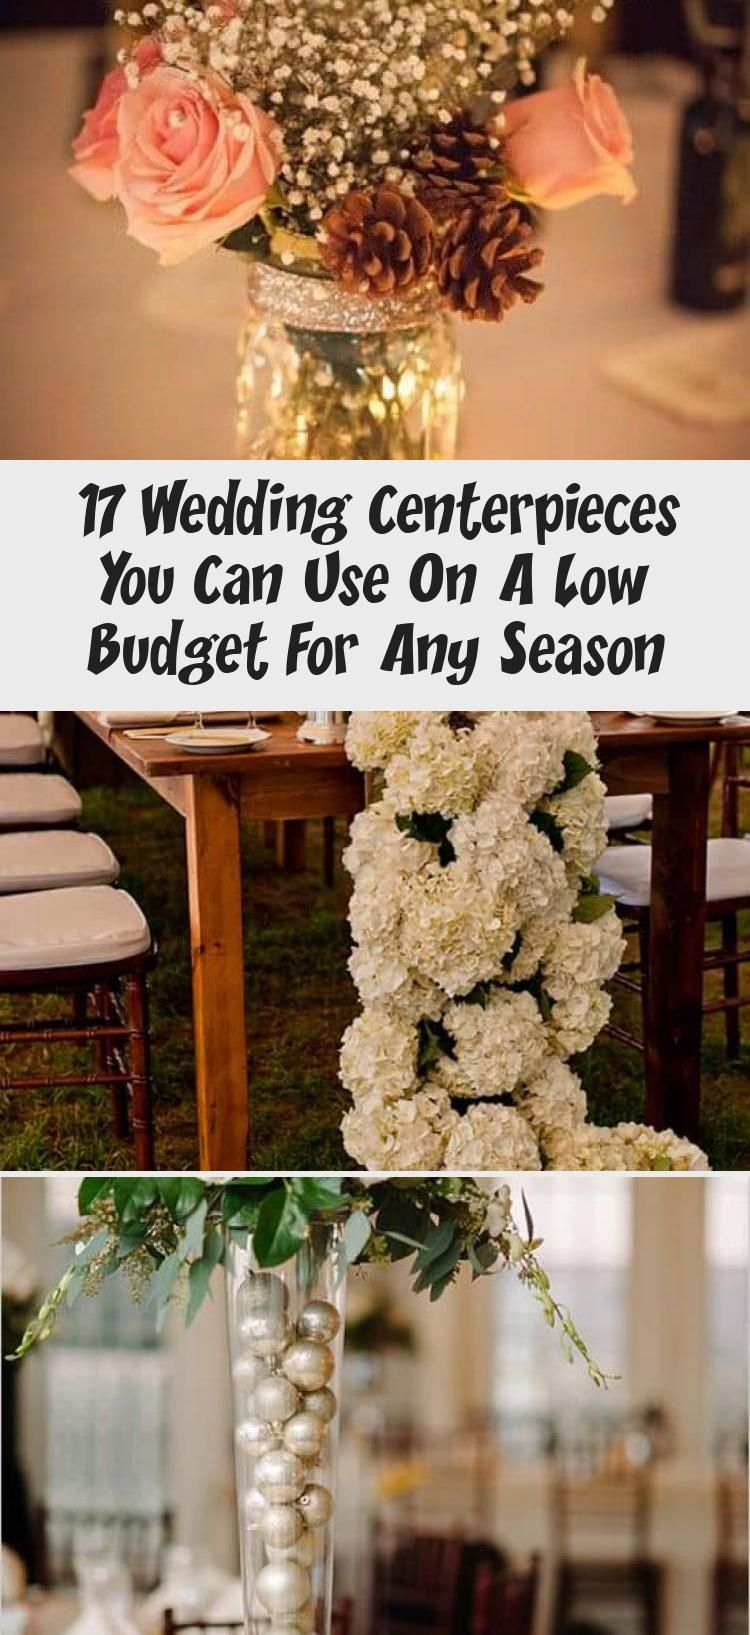 17 Wedding Centerpieces You Can Use On A Low Budget For Any Season In 2020 With Images Budget Wedding Centerpieces Wedding Decorations Centerpieces Unique Wedding Centerpieces